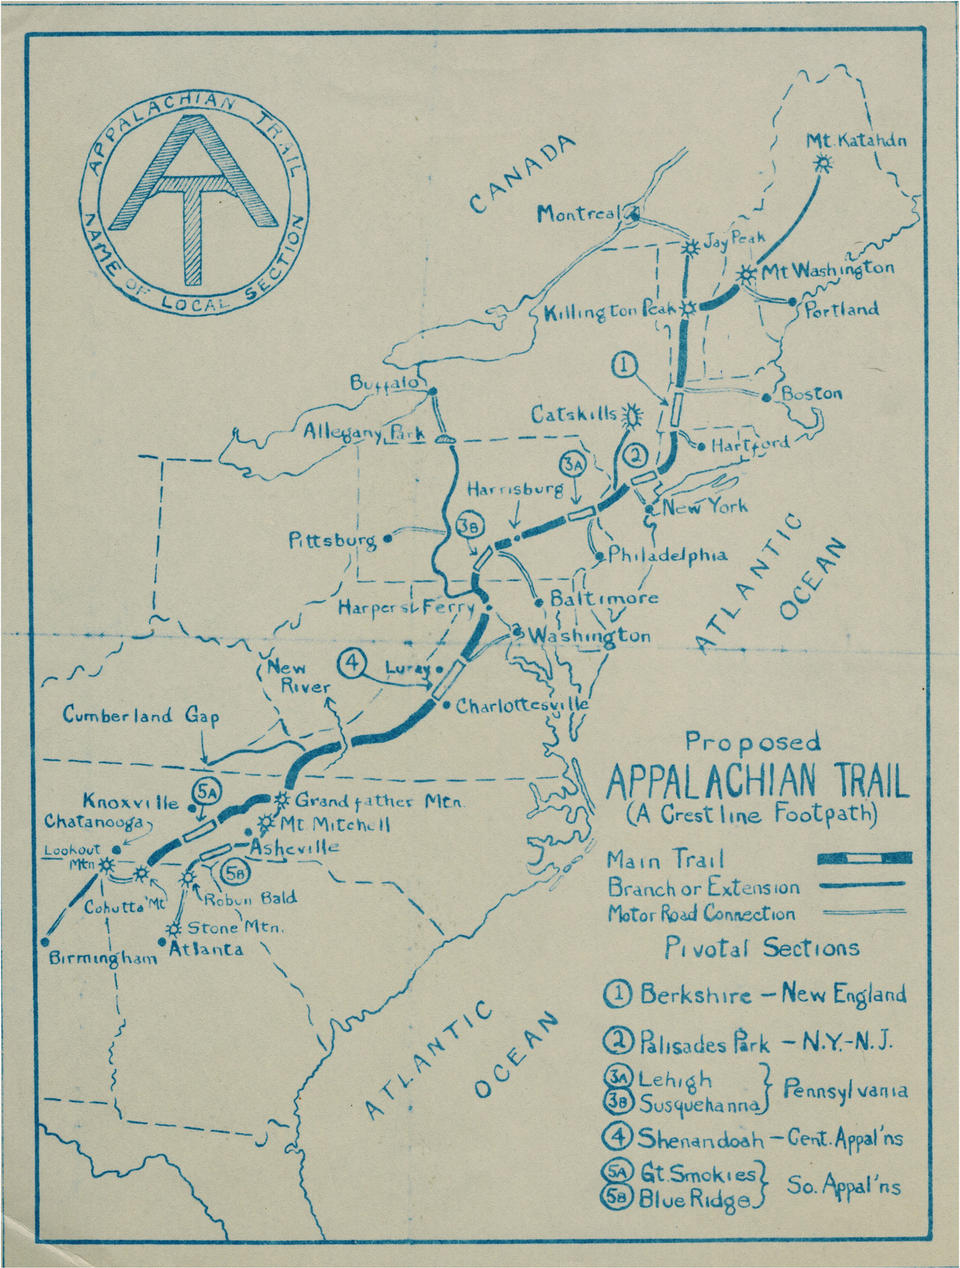 Amazing appalachian trail maryland map galleries printable map.